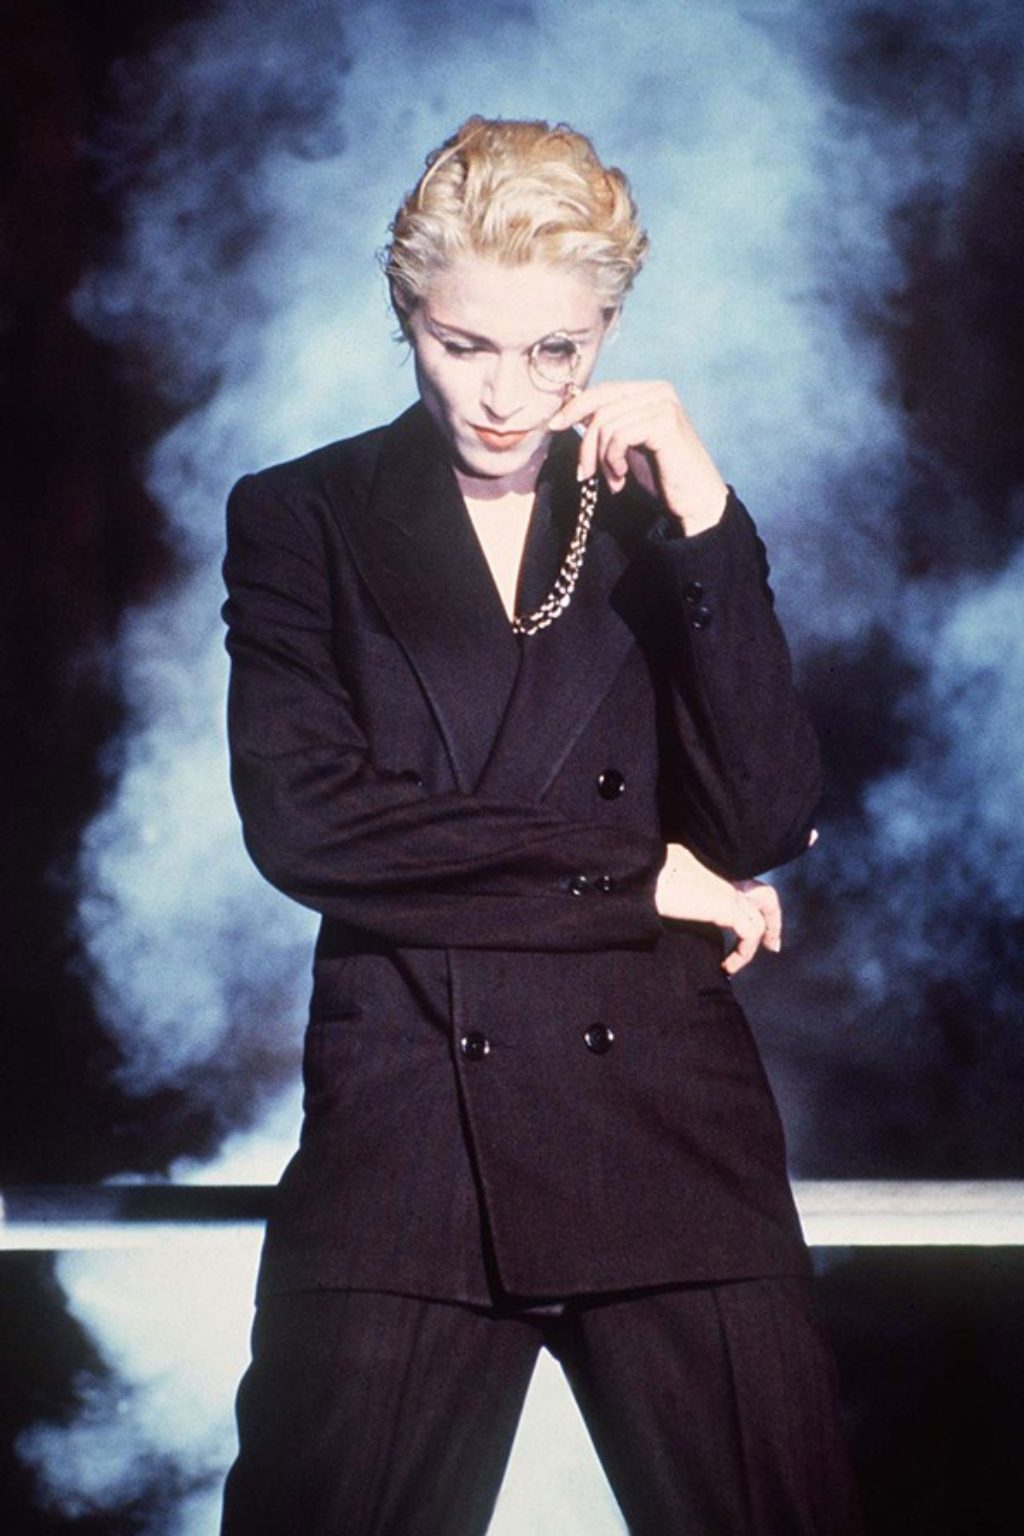 Madonna Gaultier Express Yourself Wearing a Black Suit and Holding a Monocle